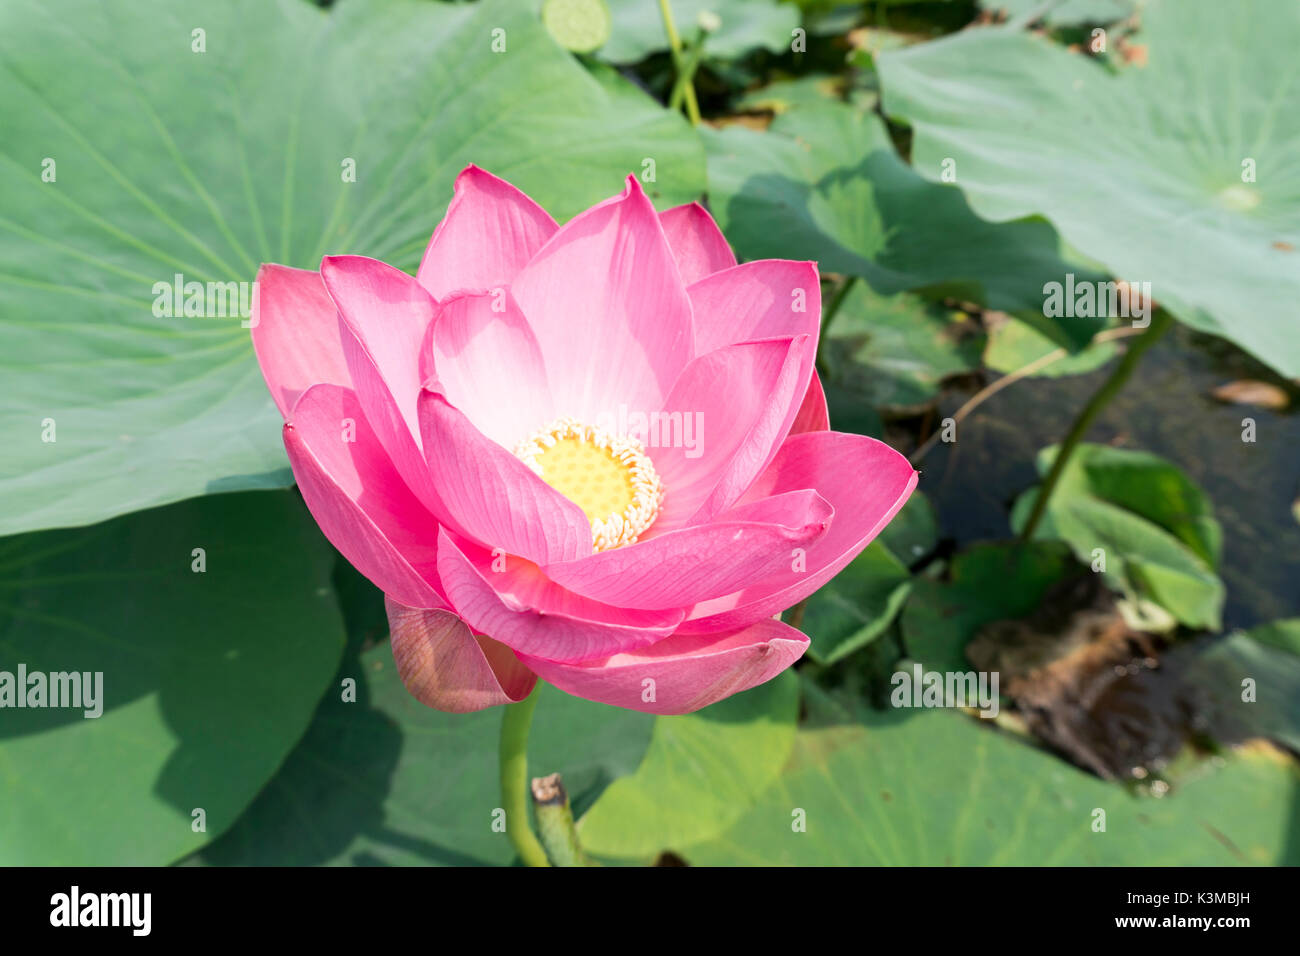 The Beautiful Lotus Flower In Full Bloom In The Summer Of The Pond